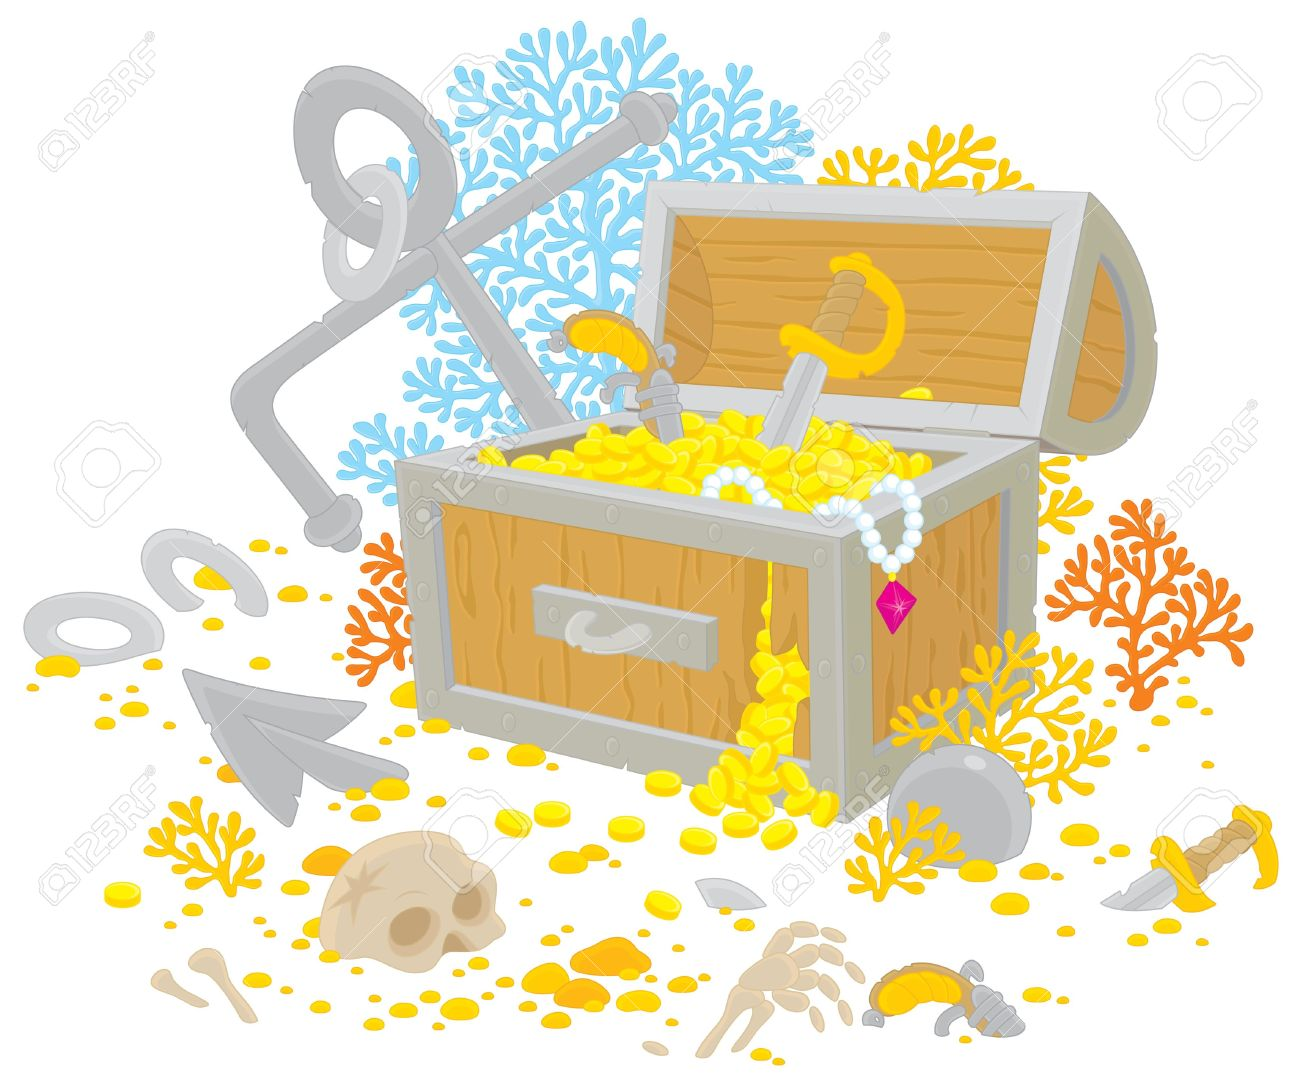 Treasure Chest Of A Sunken Pirate Ship Royalty Free Cliparts.